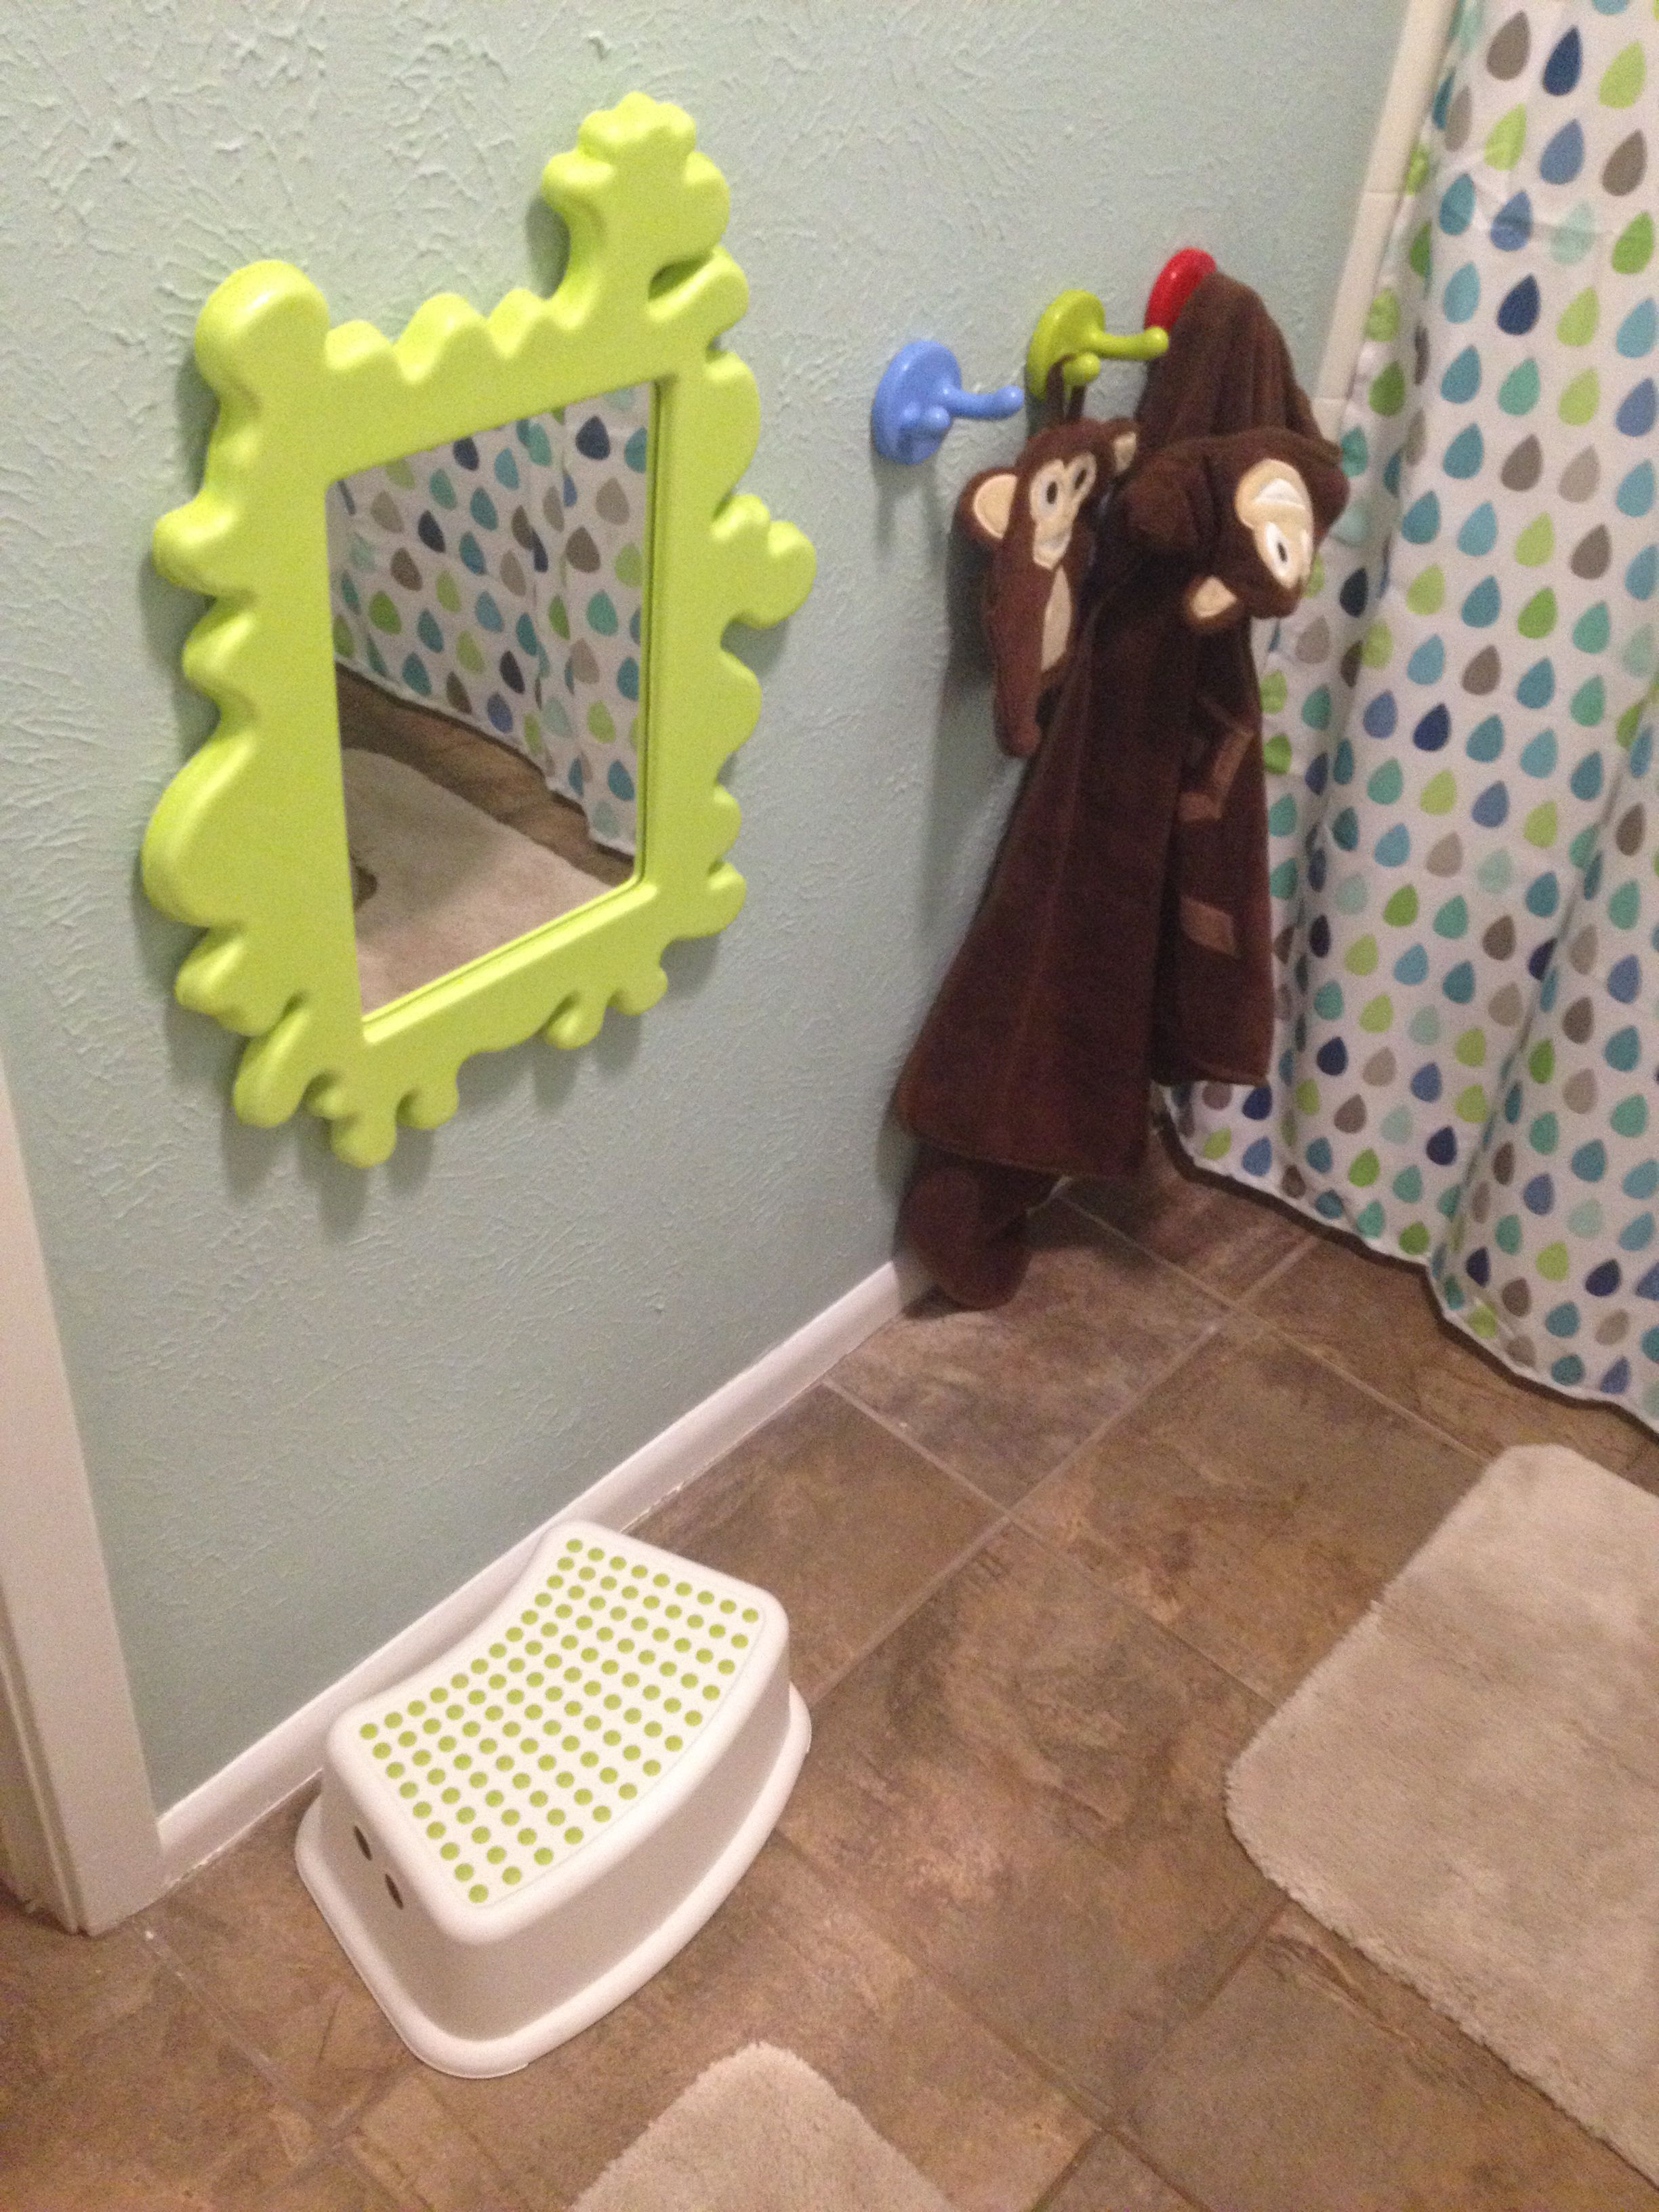 Ikea Toddler Hooks And Mirror In Bathroom